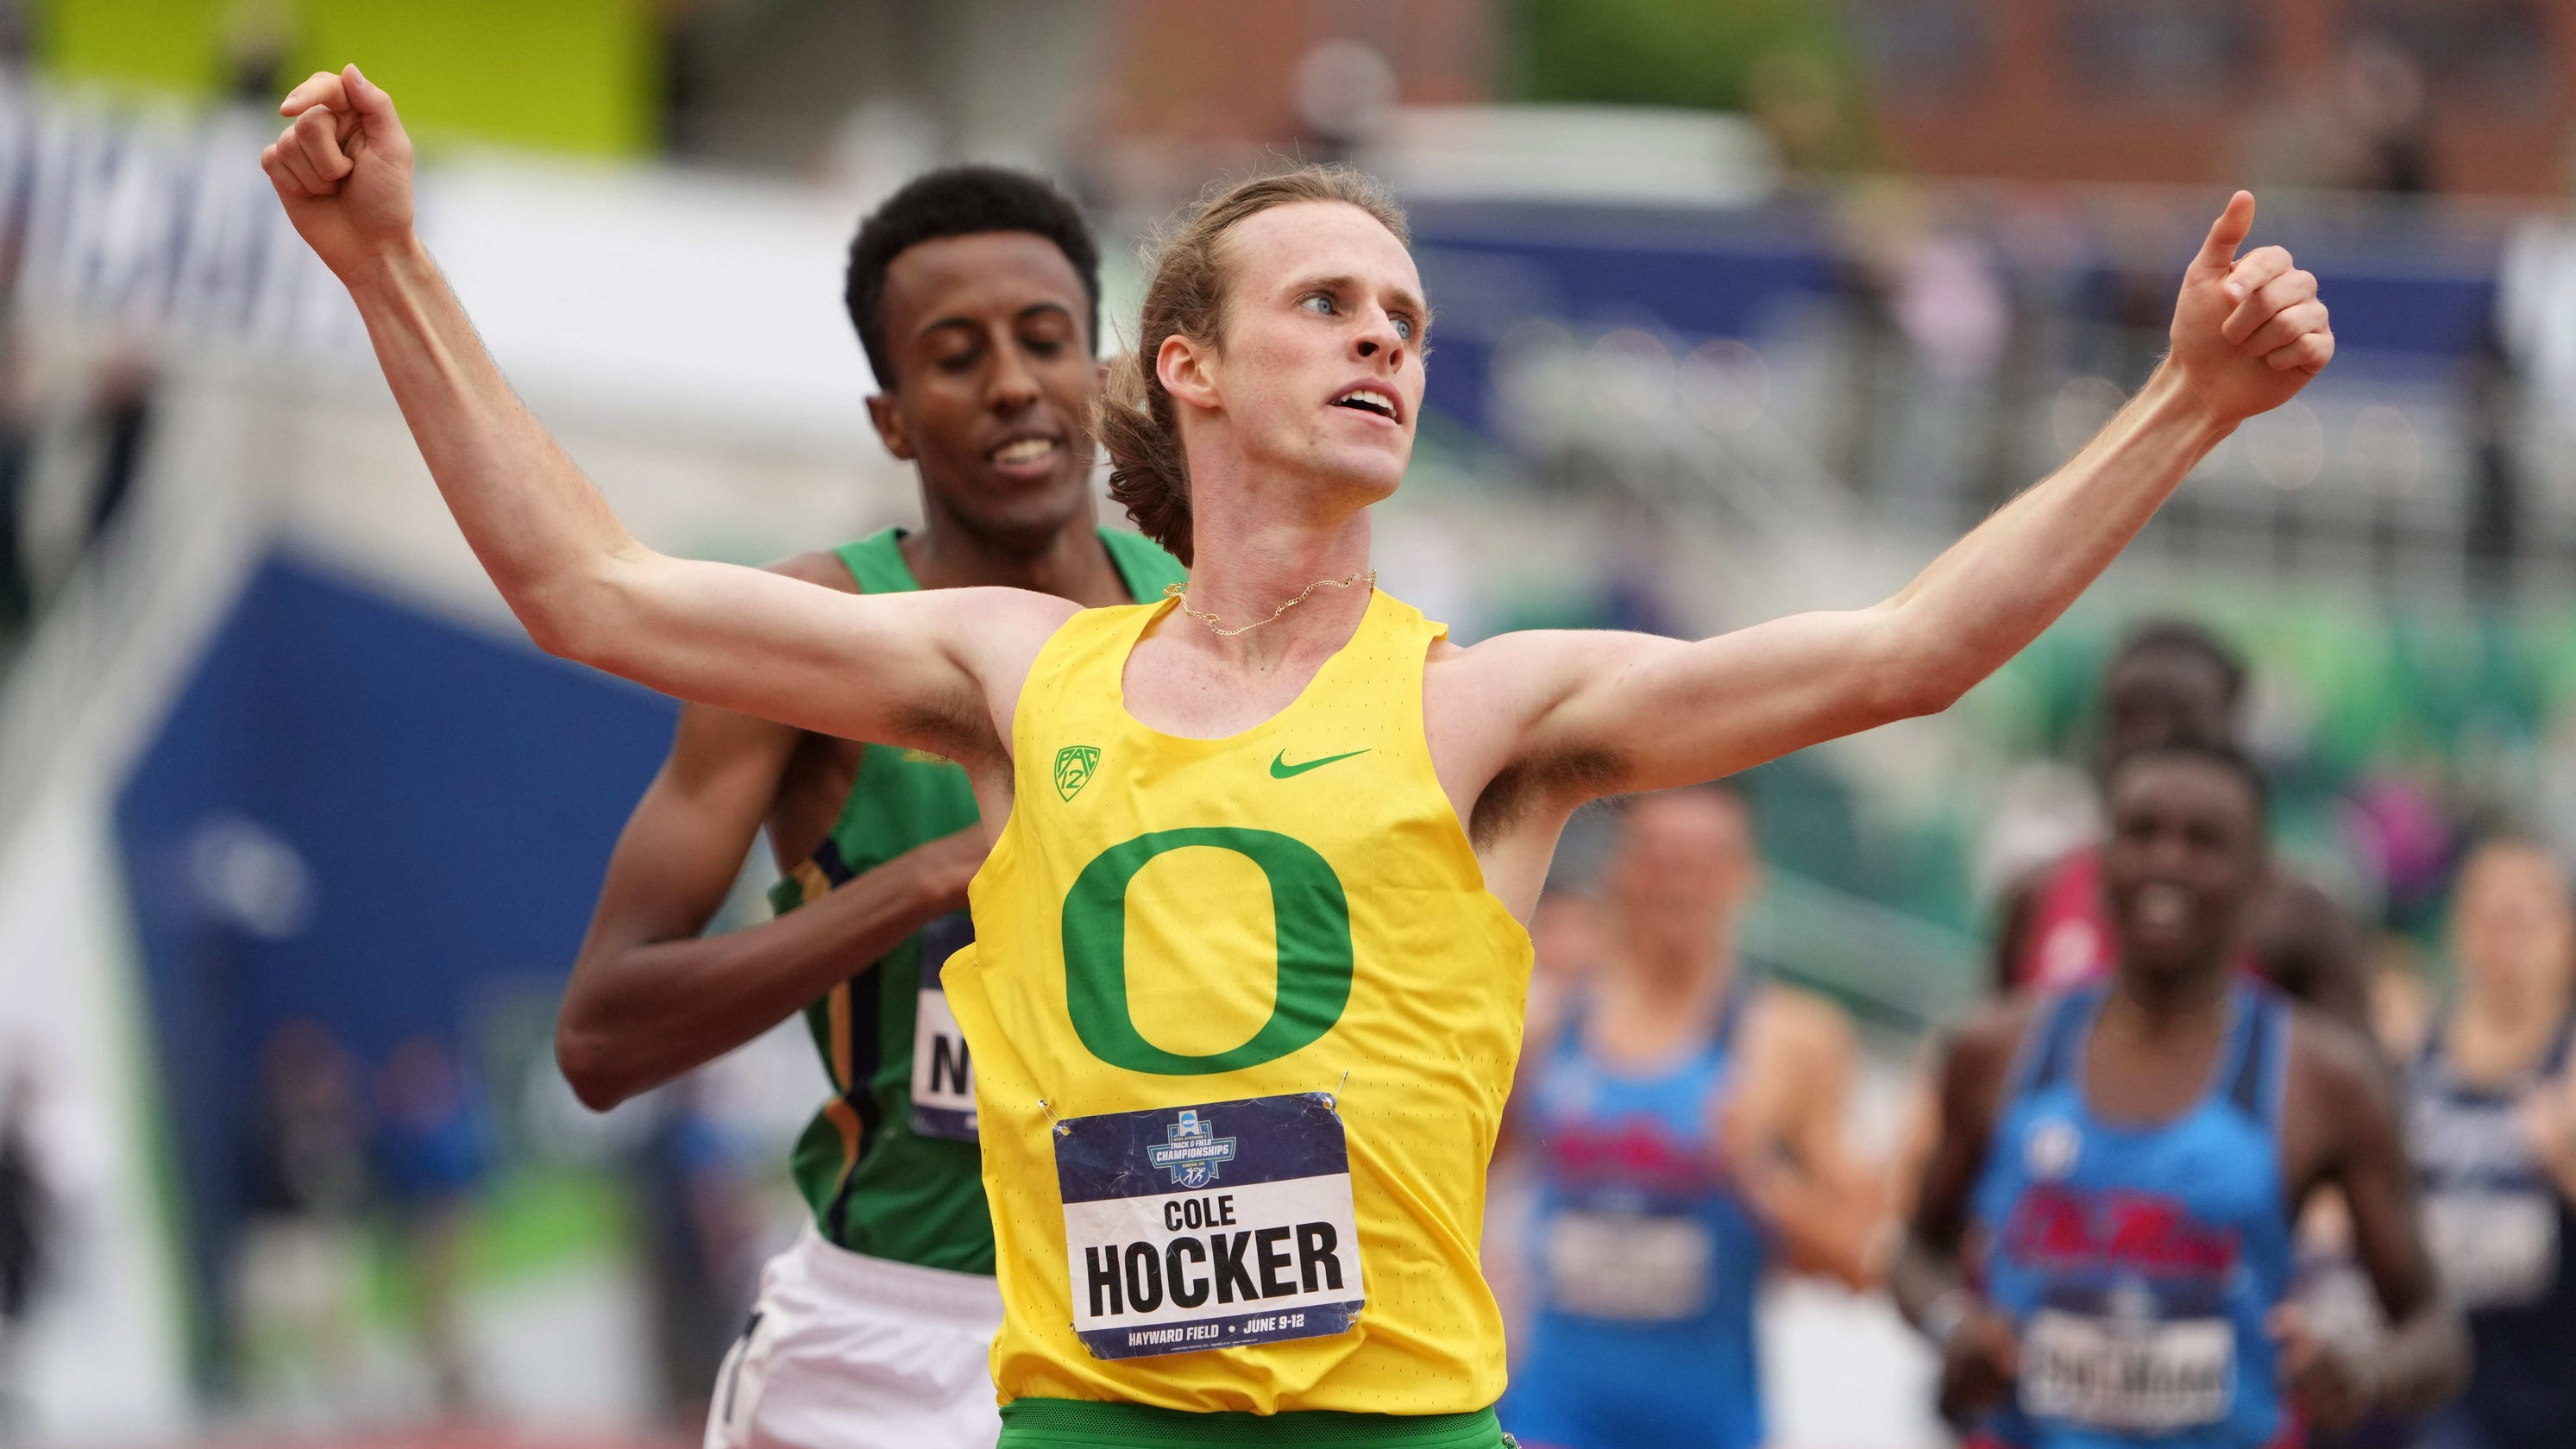 Cathedral's Cole Hocker wins third NCAA title of year, taking 1,500 over ND's Yared Nuguse